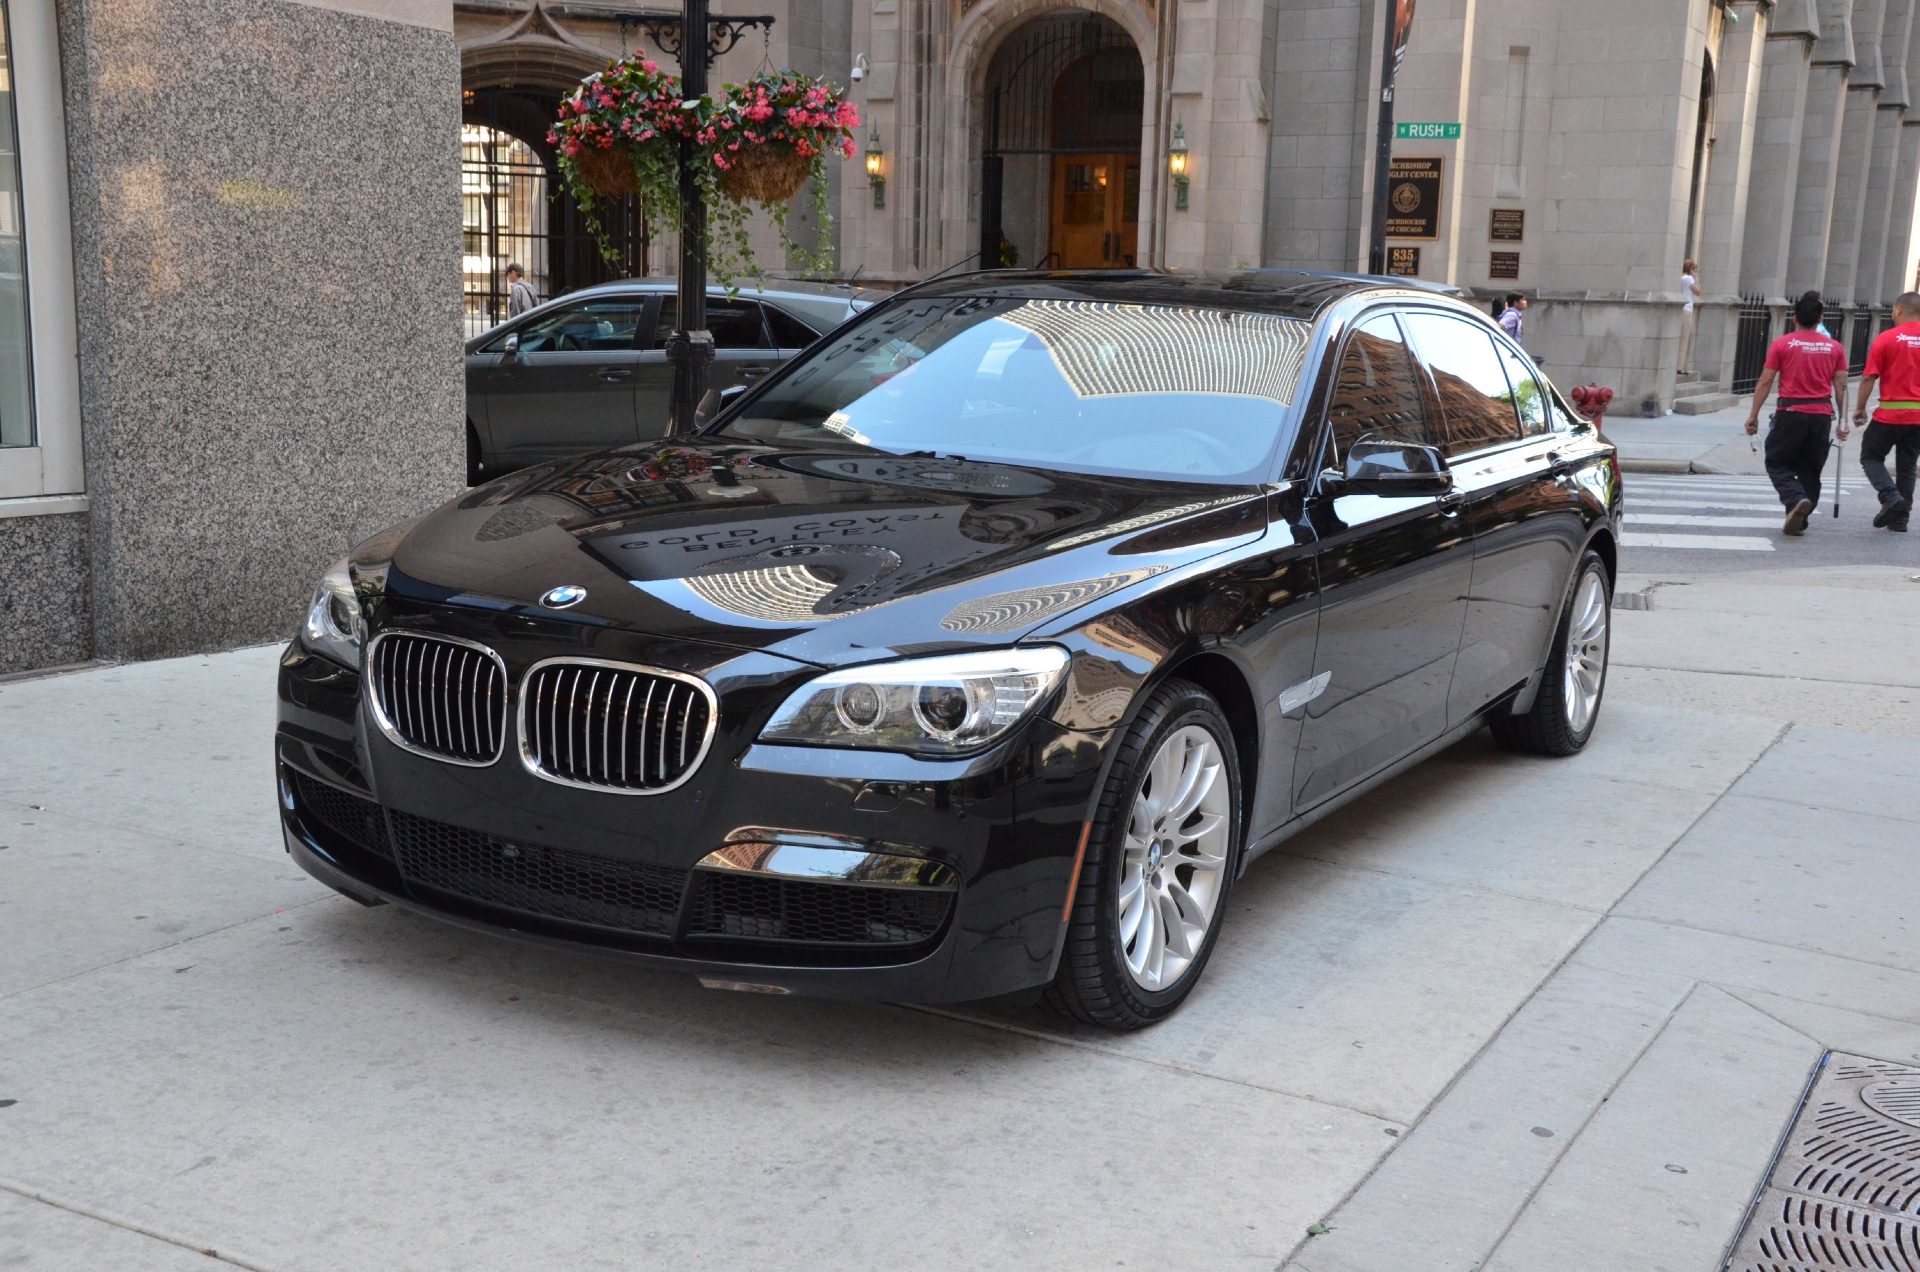 2013 BMW 7 Series 750Li xDrive | Used Bentley | Used Rolls ...